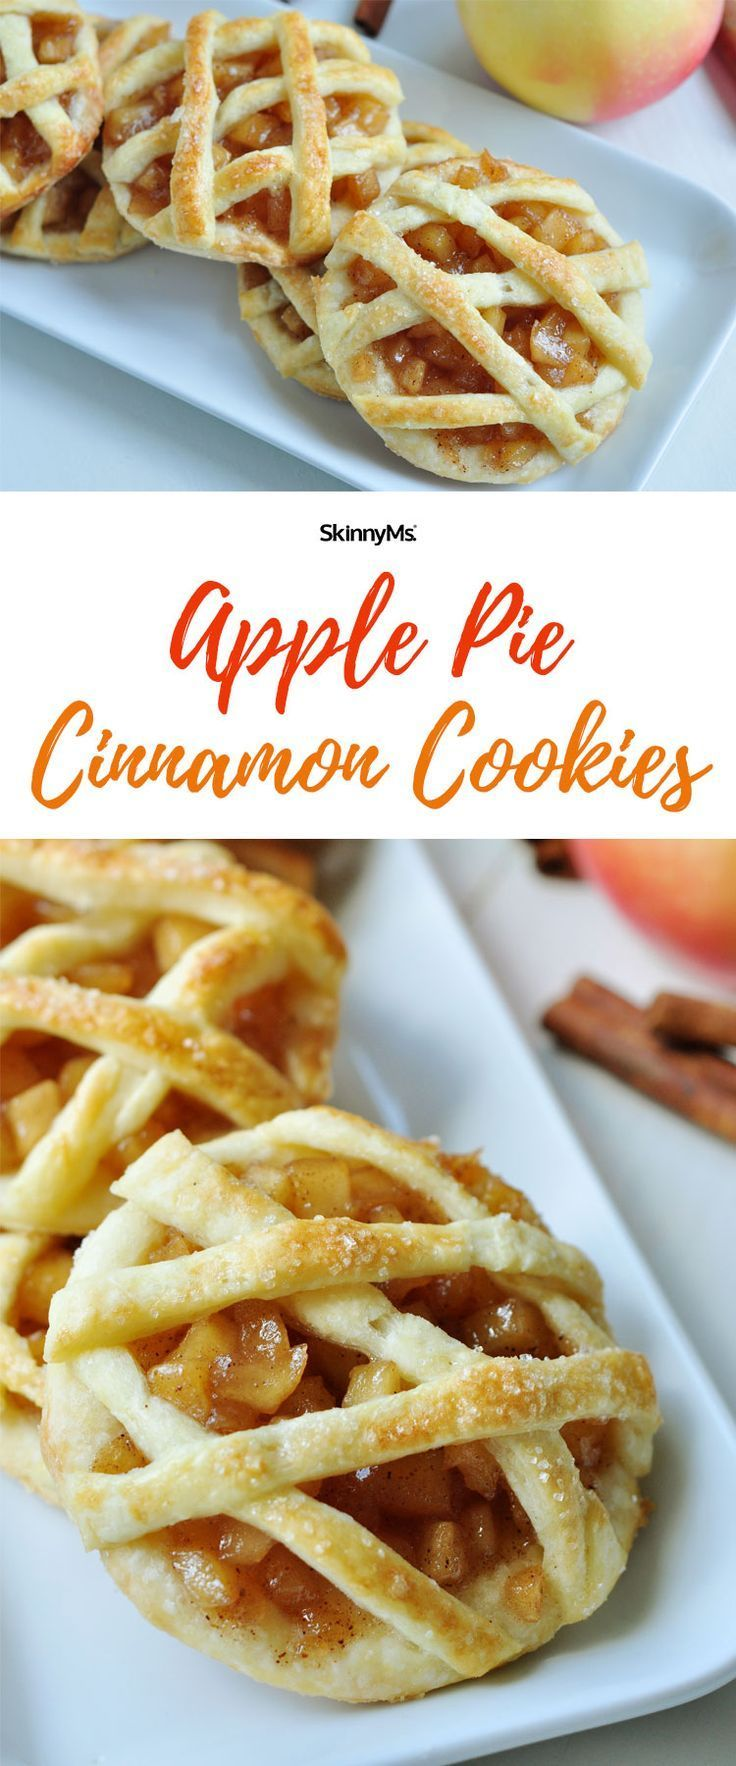 Once you try these irresistible Apple Pie Cinnamon Cookies you'll be hooked!